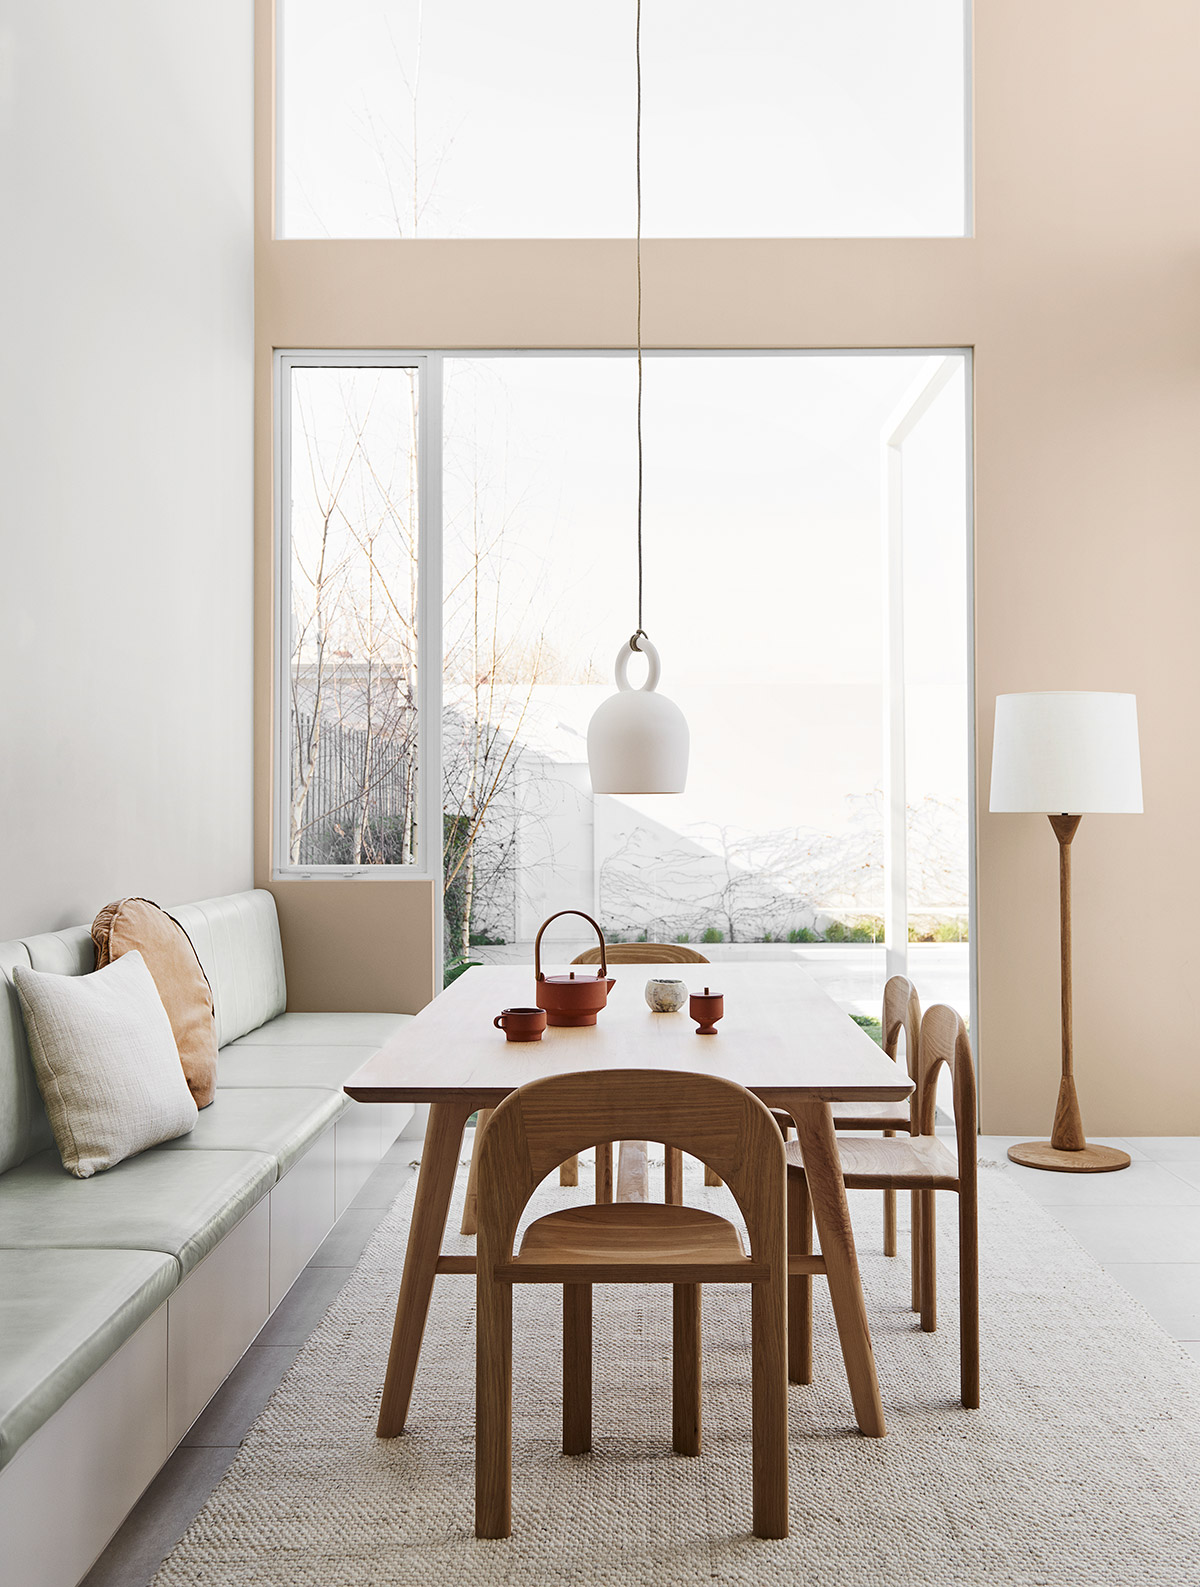 Dulux Colour Forecast 2020. Global colour trends and interiors styles.